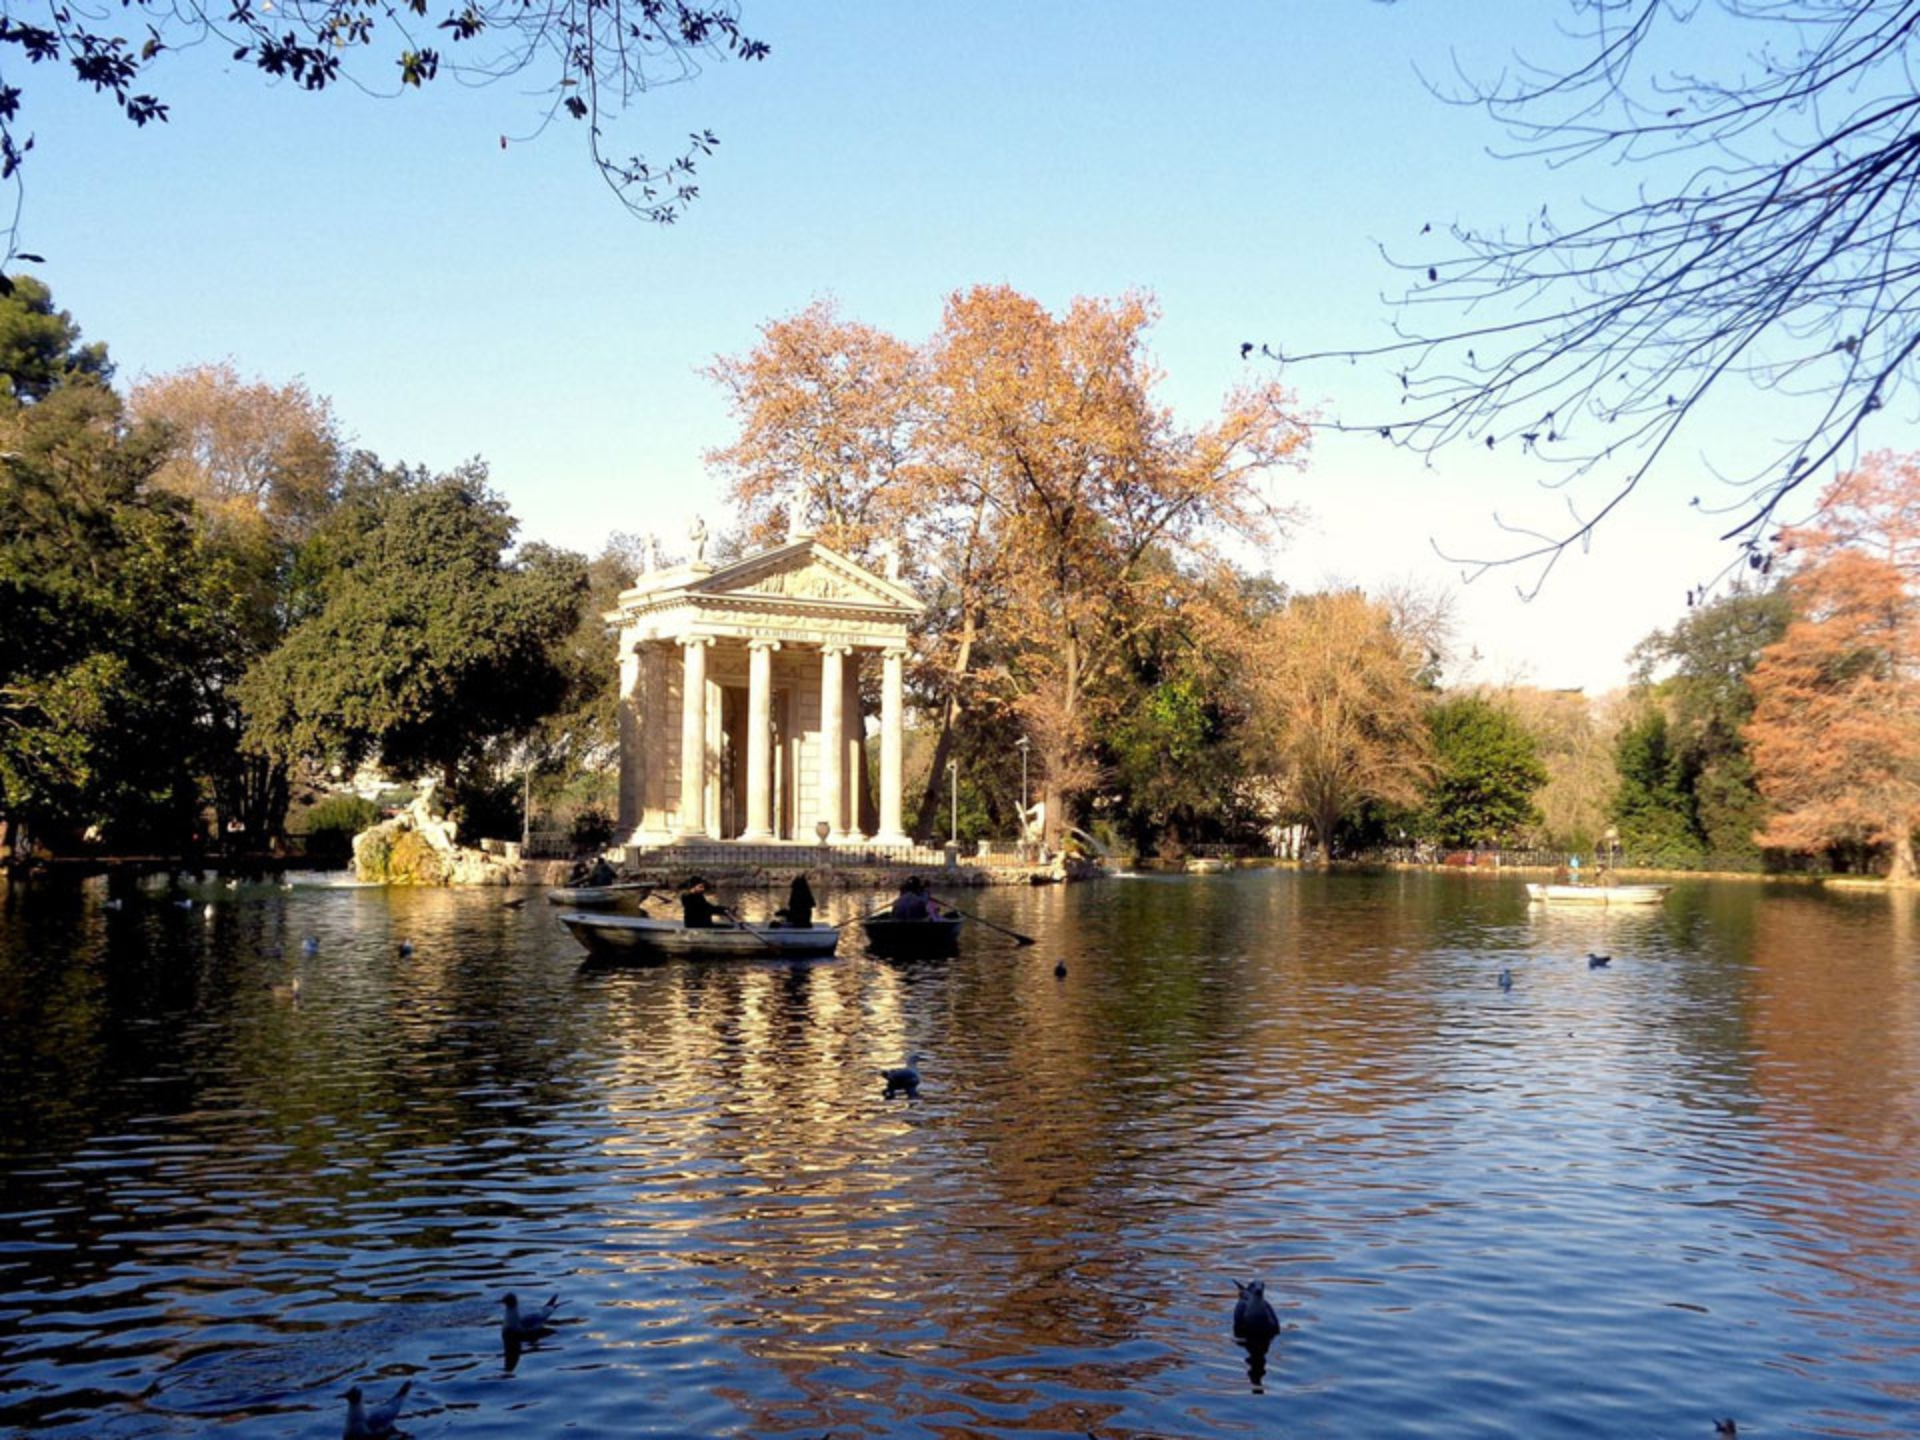 borghese-gallery_Italy-Tour-With-Theresa_02